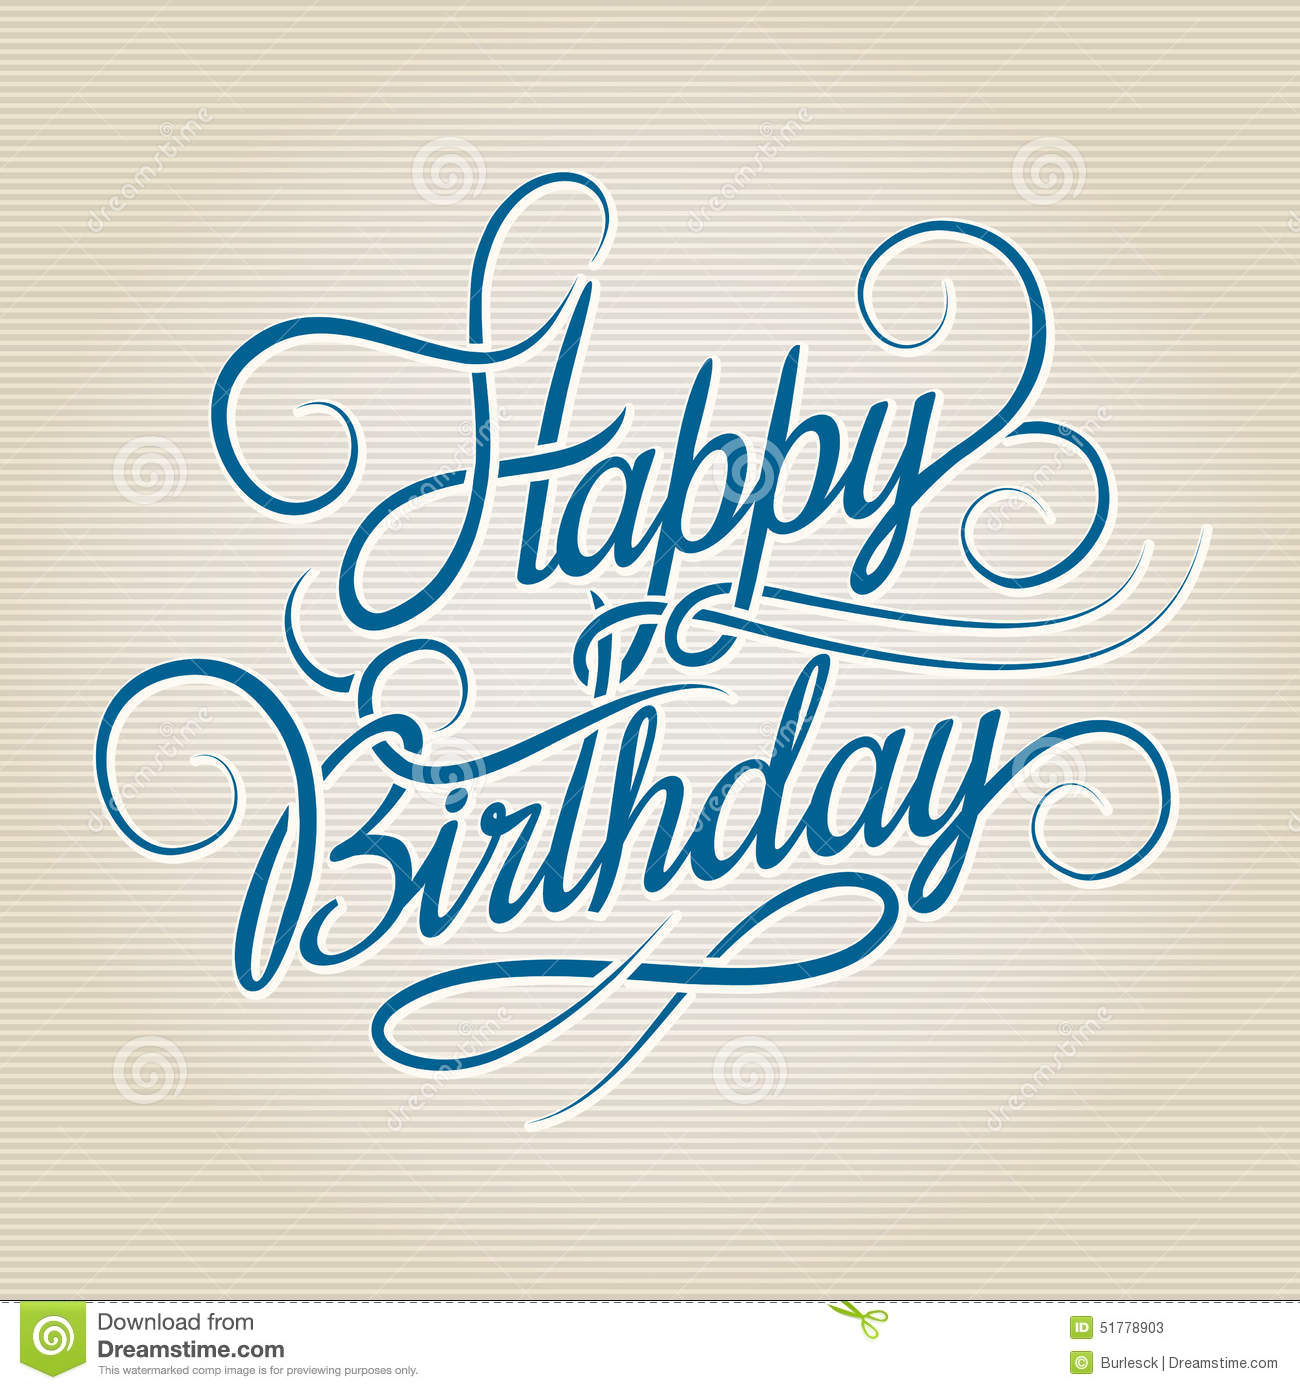 Happy Birthday Illustration Font ~ Happy birthday hand drawn lettering stock vector image